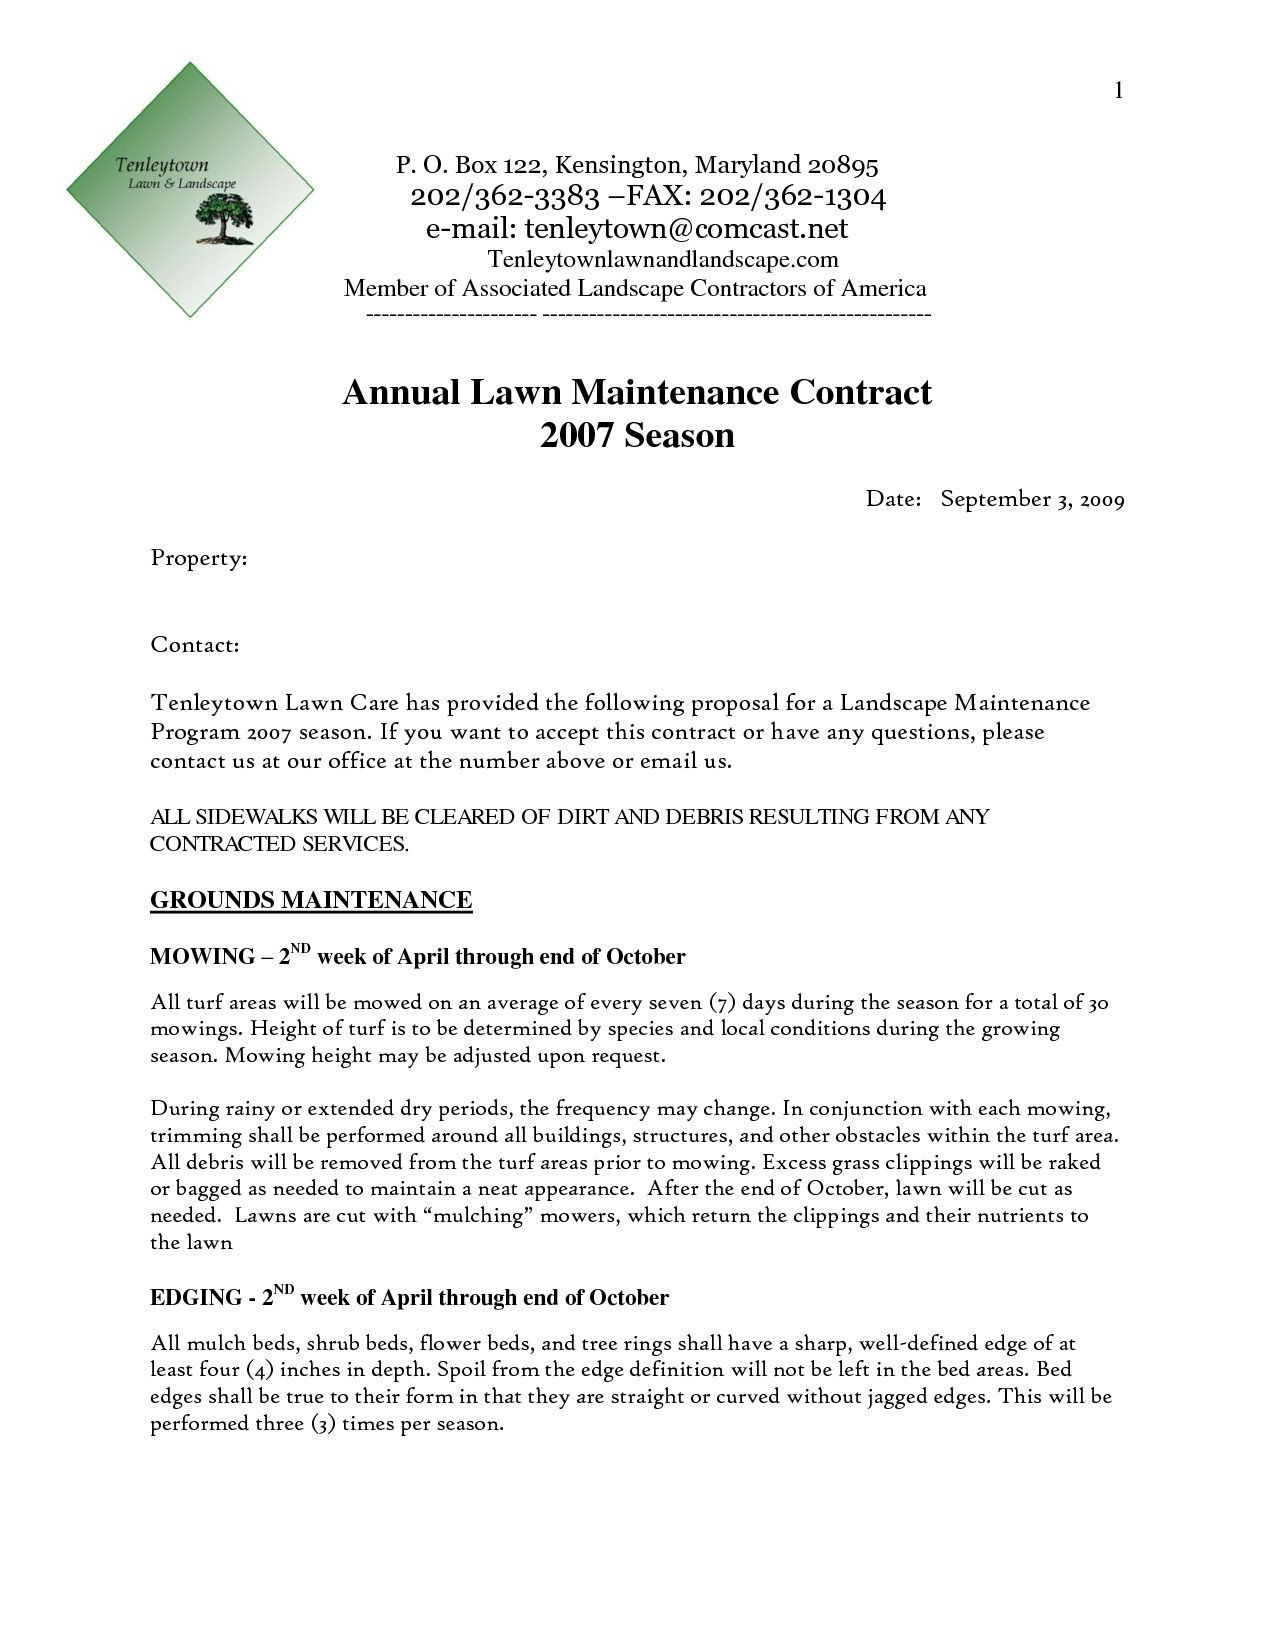 Landscaping Proposal Template Free Grounds Maintenance Proposal Template